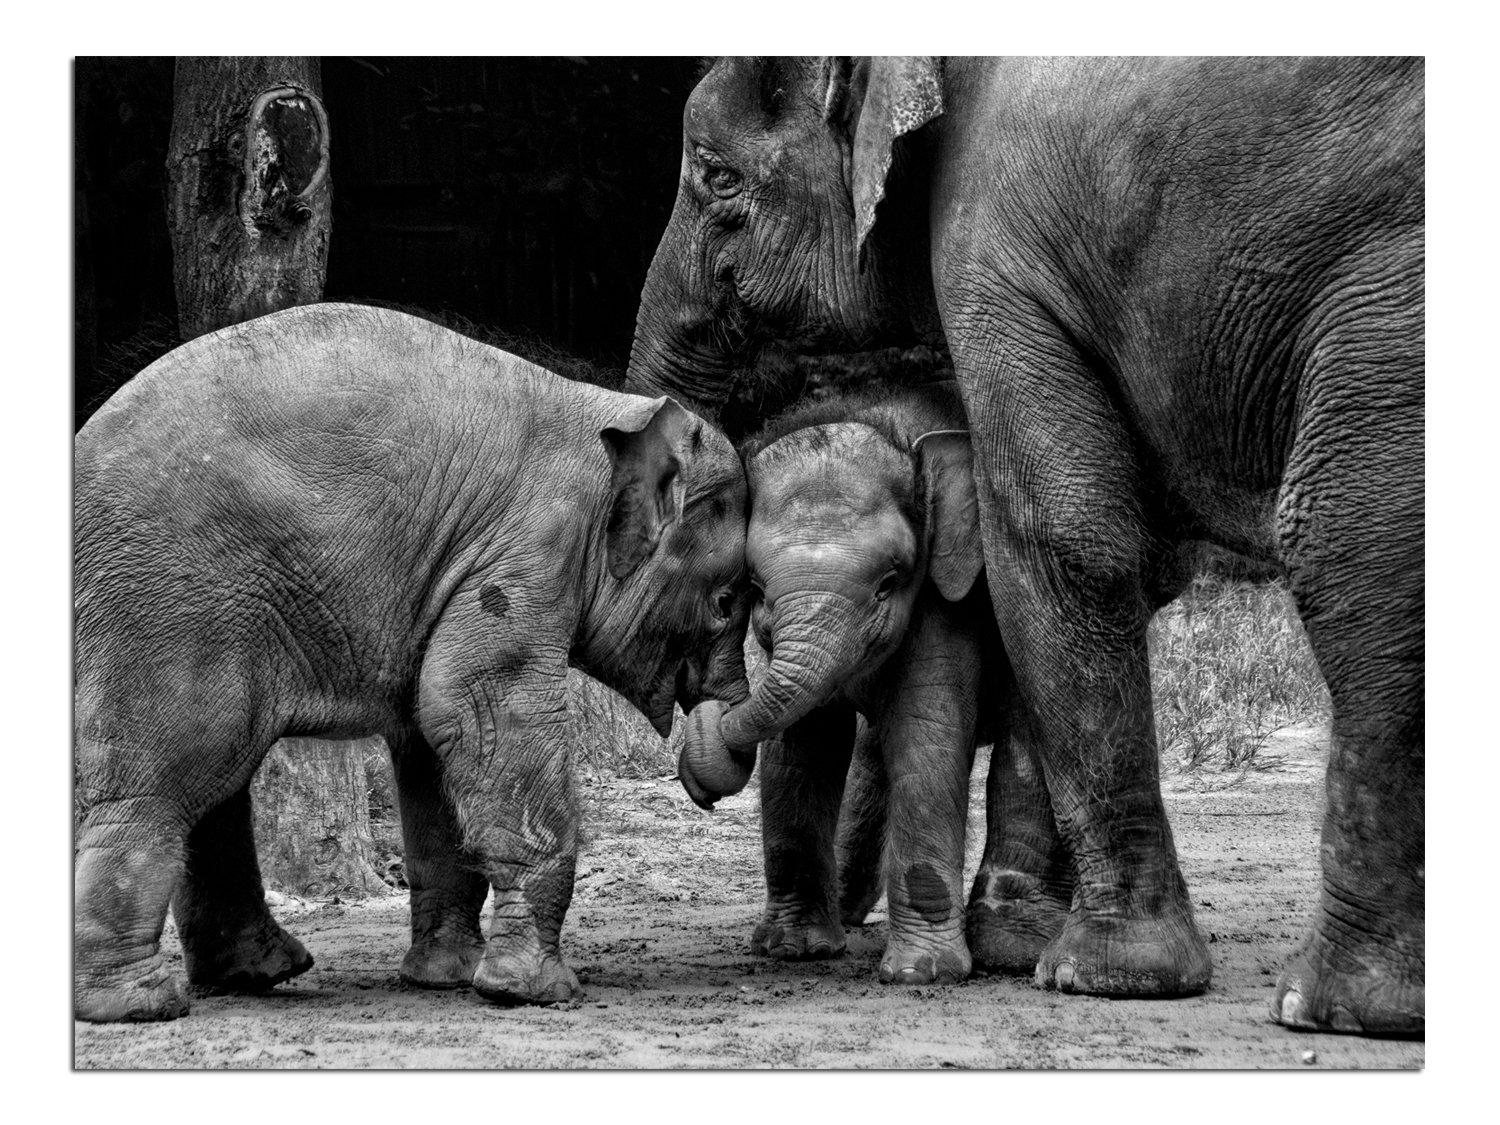 JP London Solvent Free Print PAPL1X441808 Friends Forever Elephant Love Hug Family Ready to Frame Poster Wall Art 40 h by 30 w